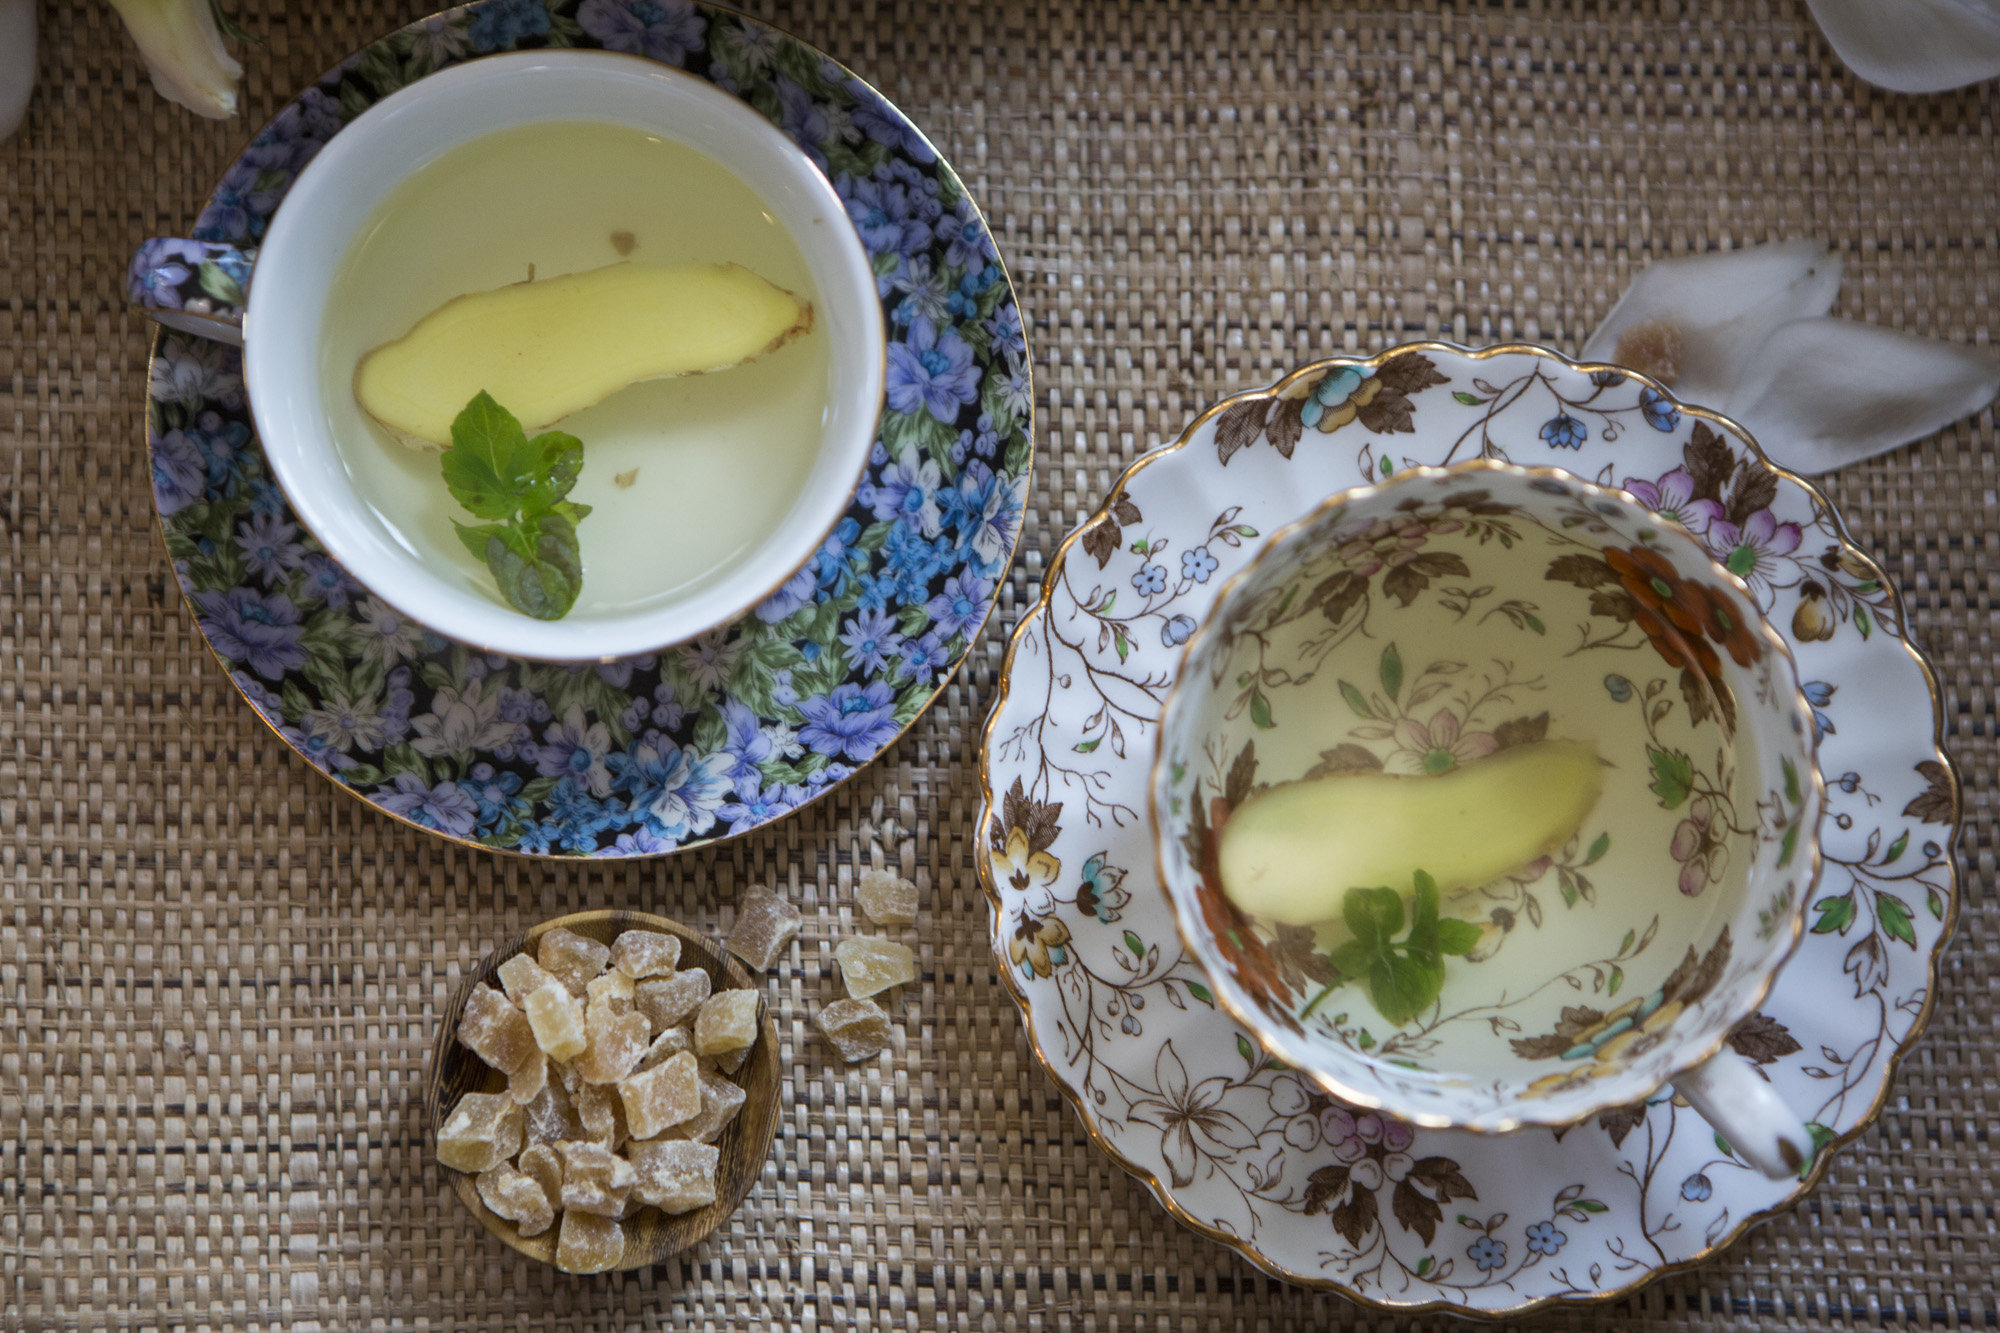 Lemon, Ginger, Mint Digestion Tea